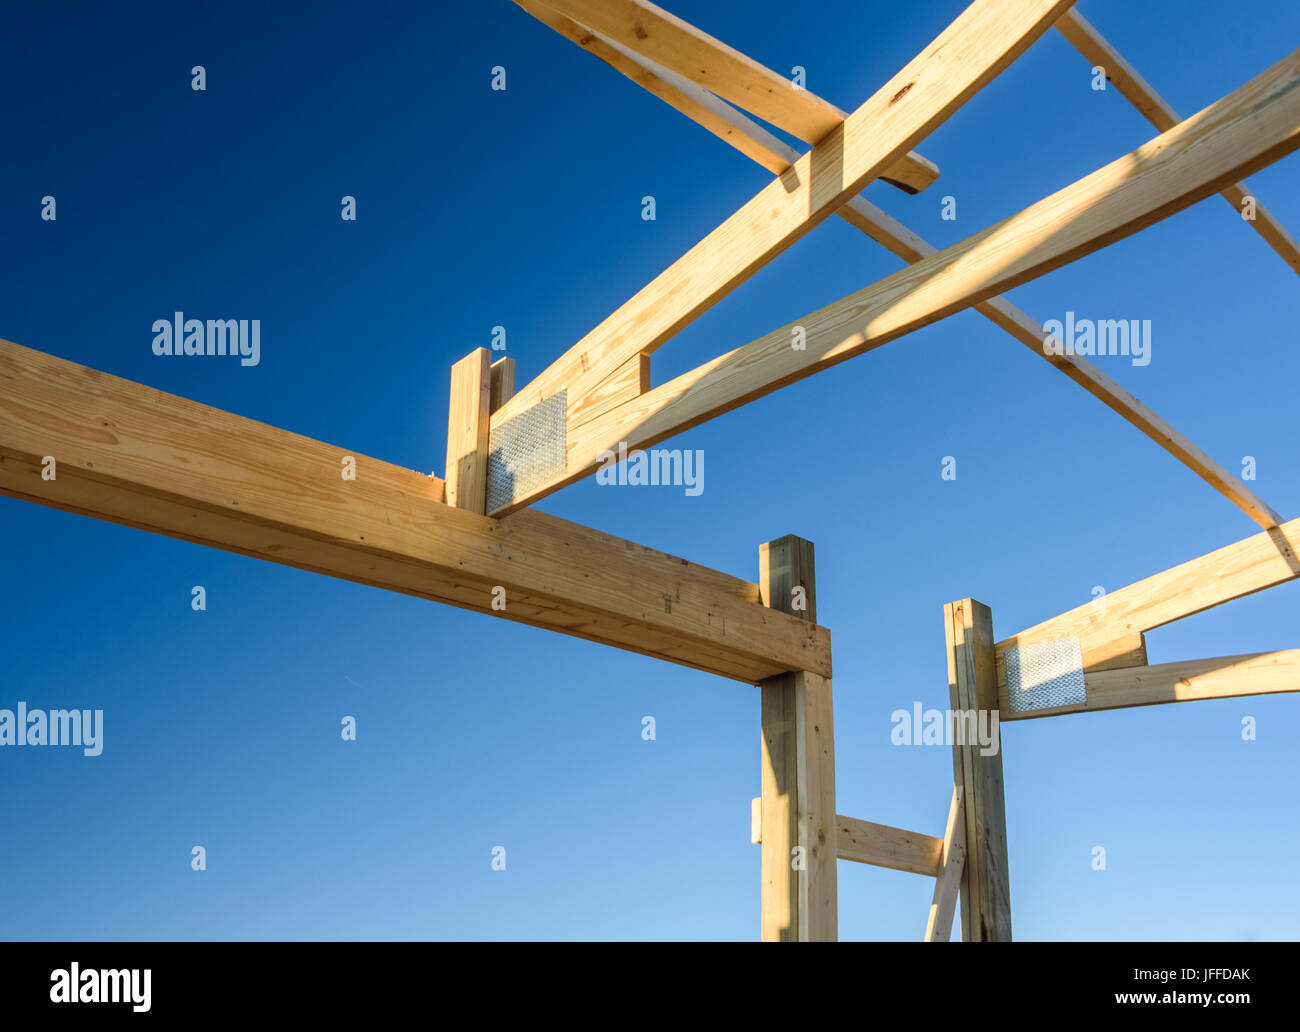 Garage truss pole building. Timber, wooden truss attachment. Construction site framing - Stock Image